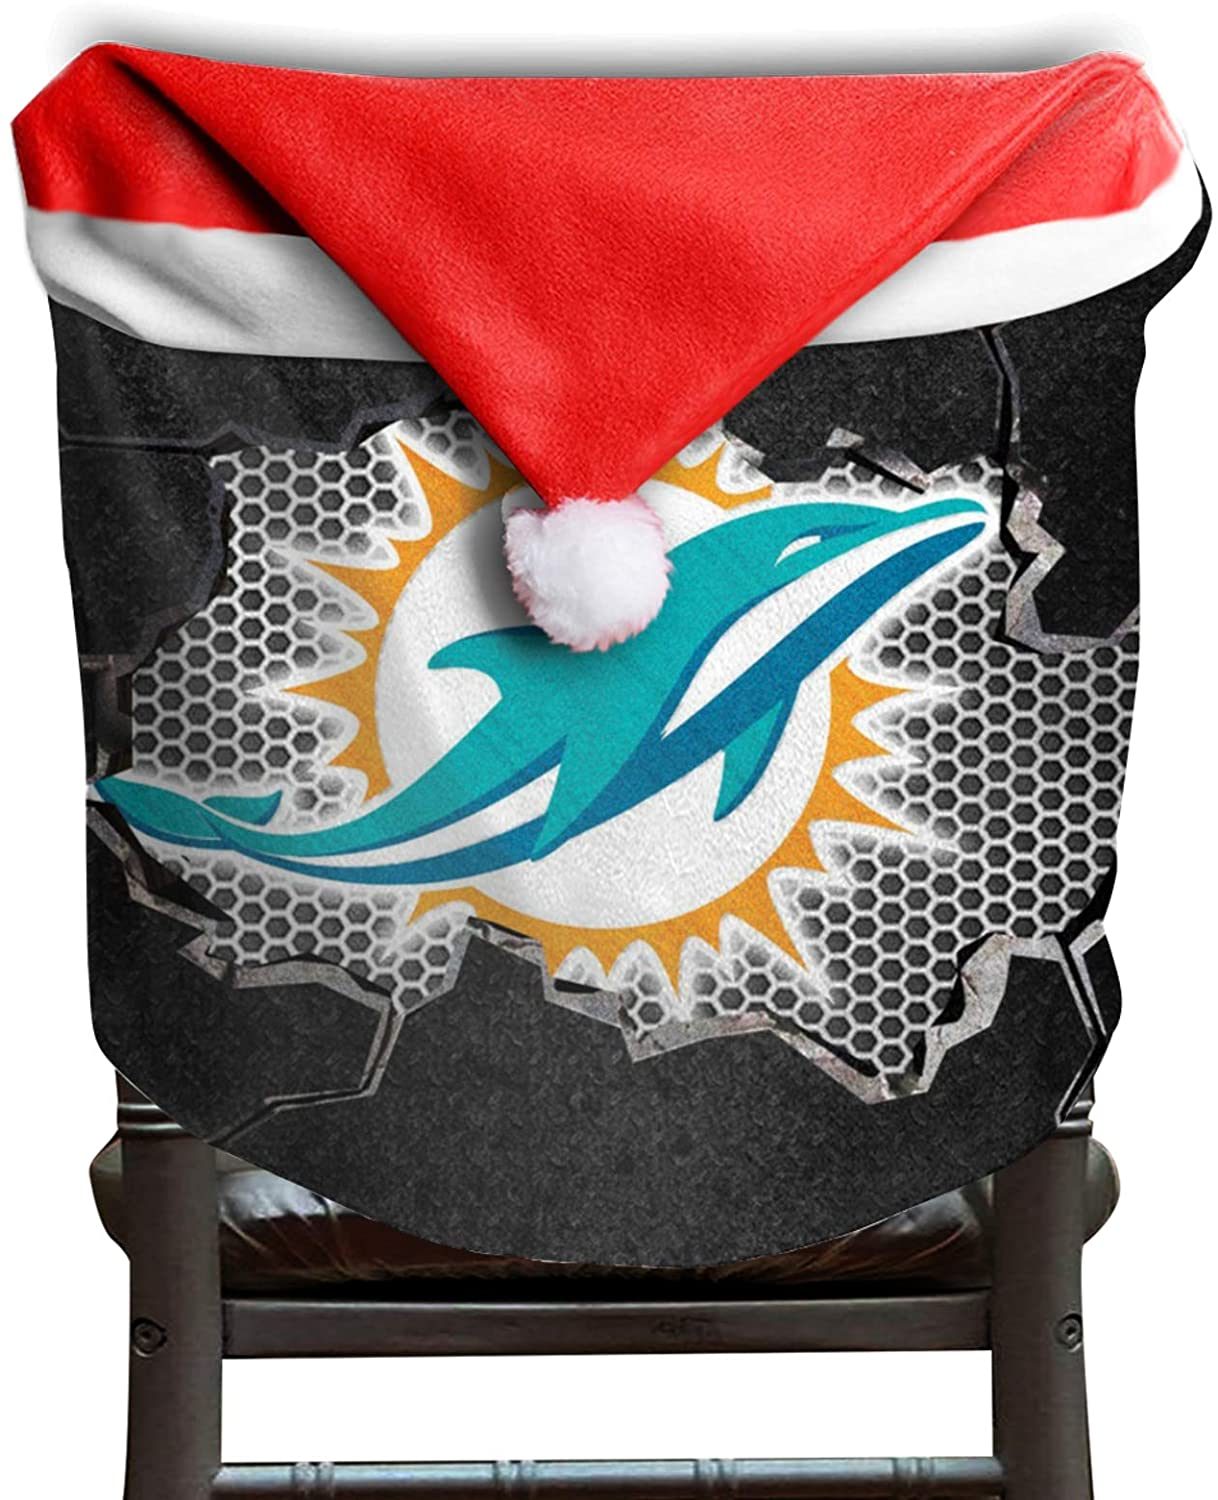 Sneakersssa Miami Football Dolphin Christmas Chair Seat Back Covers Santa Hat Chair Covers for Xmas Holiday Christmas Party Festive Decoration Red